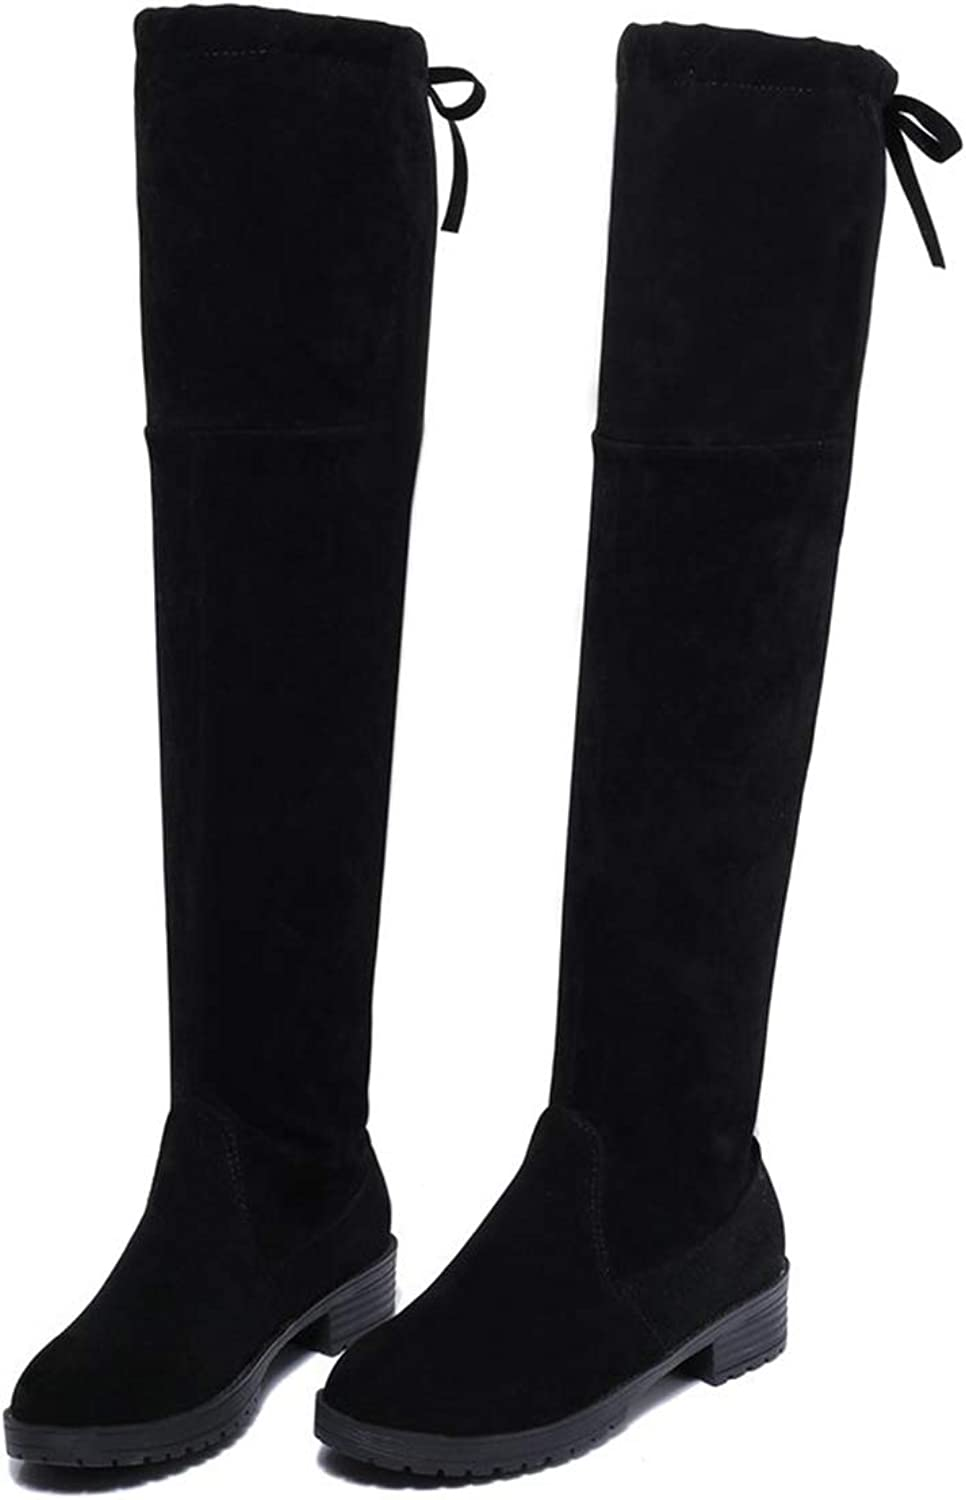 T-JULY Women's Winter Snow shoes Boots Sexy Black Casual Flat Warm Over-The-Knee Boots Botas